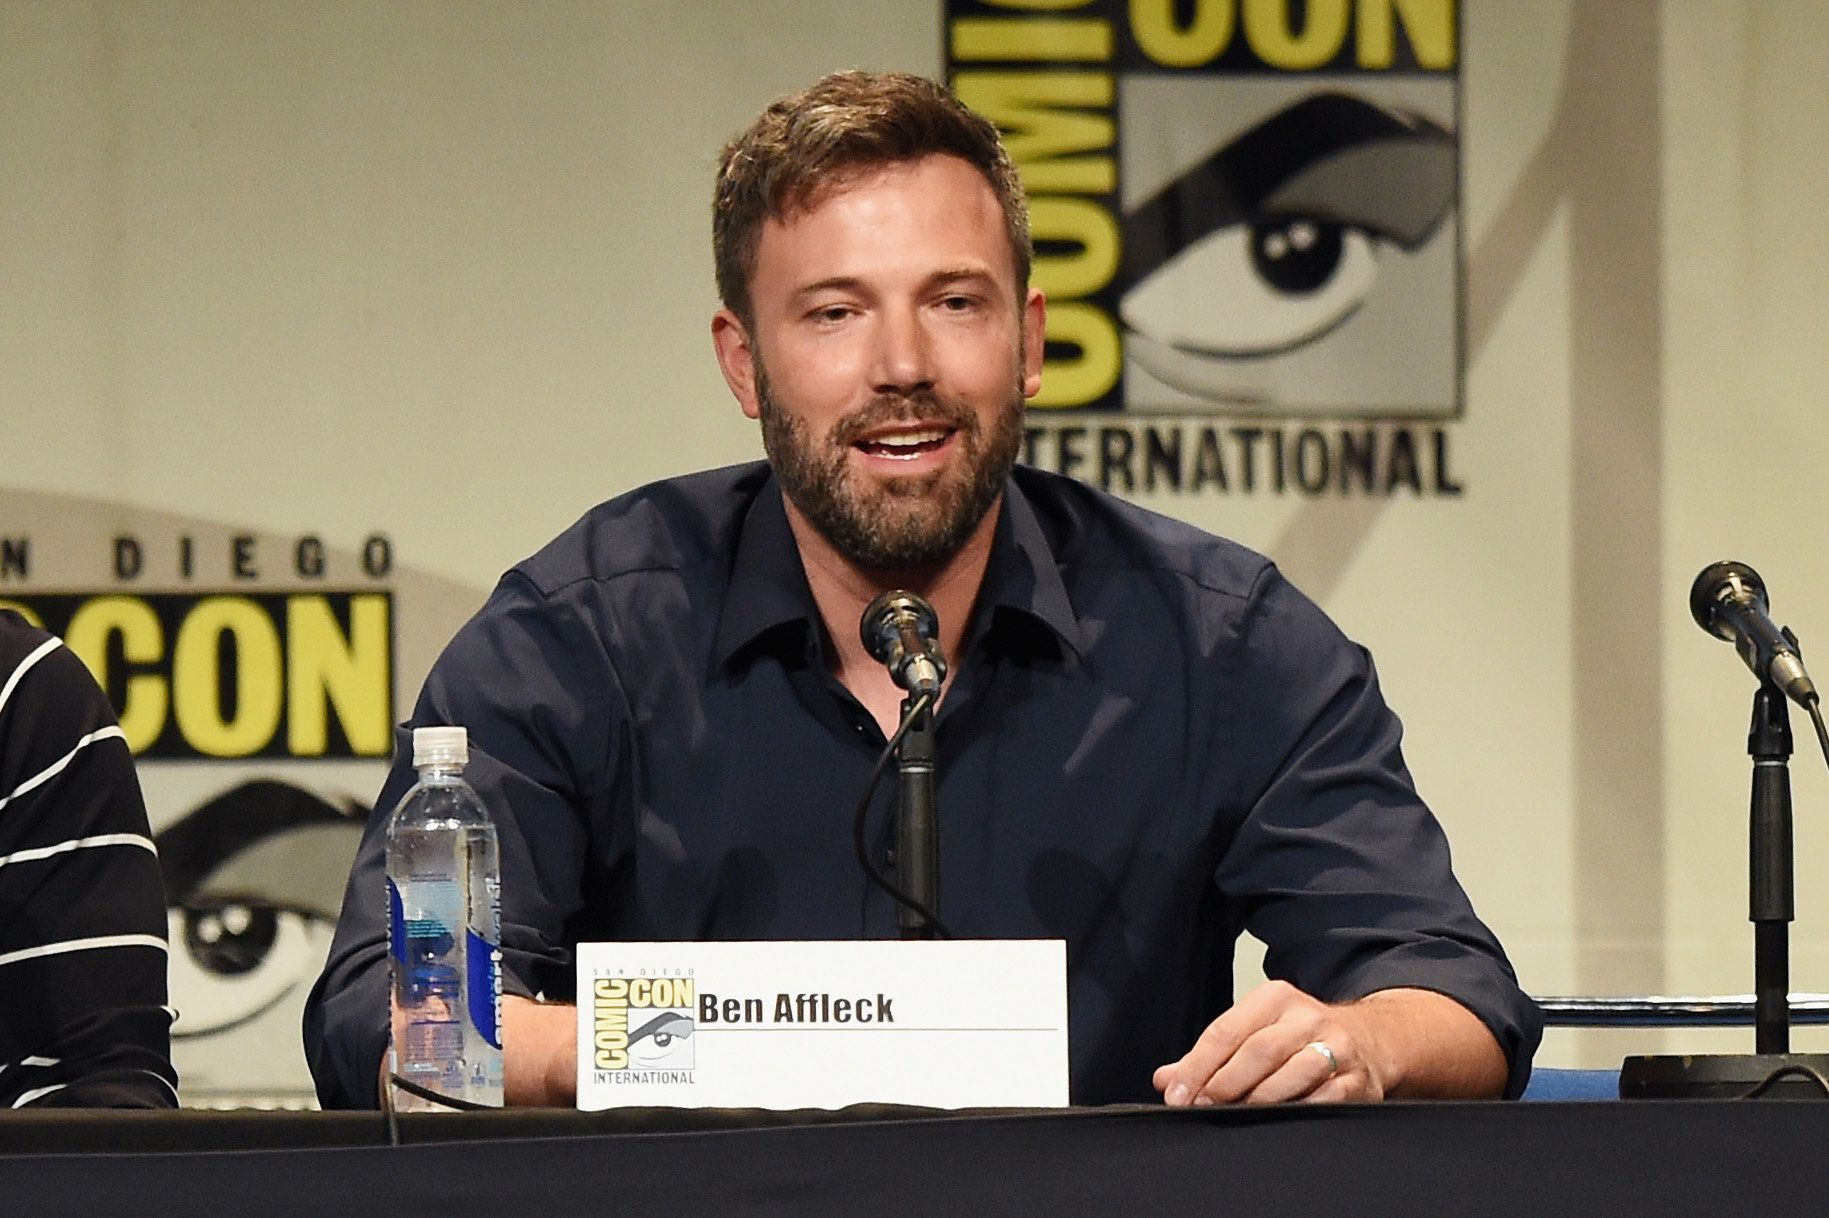 SAN DIEGO, CA - JULY 11:  Actor Ben Affleck from 'Batman v. Superman: Dawn of Justice' attends the Warner Bros. presentation during Comic-Con International 2015 at the San Diego Convention Center on July 11, 2015 in San Diego, California.  (Photo by Kevin Winter/Getty Images)